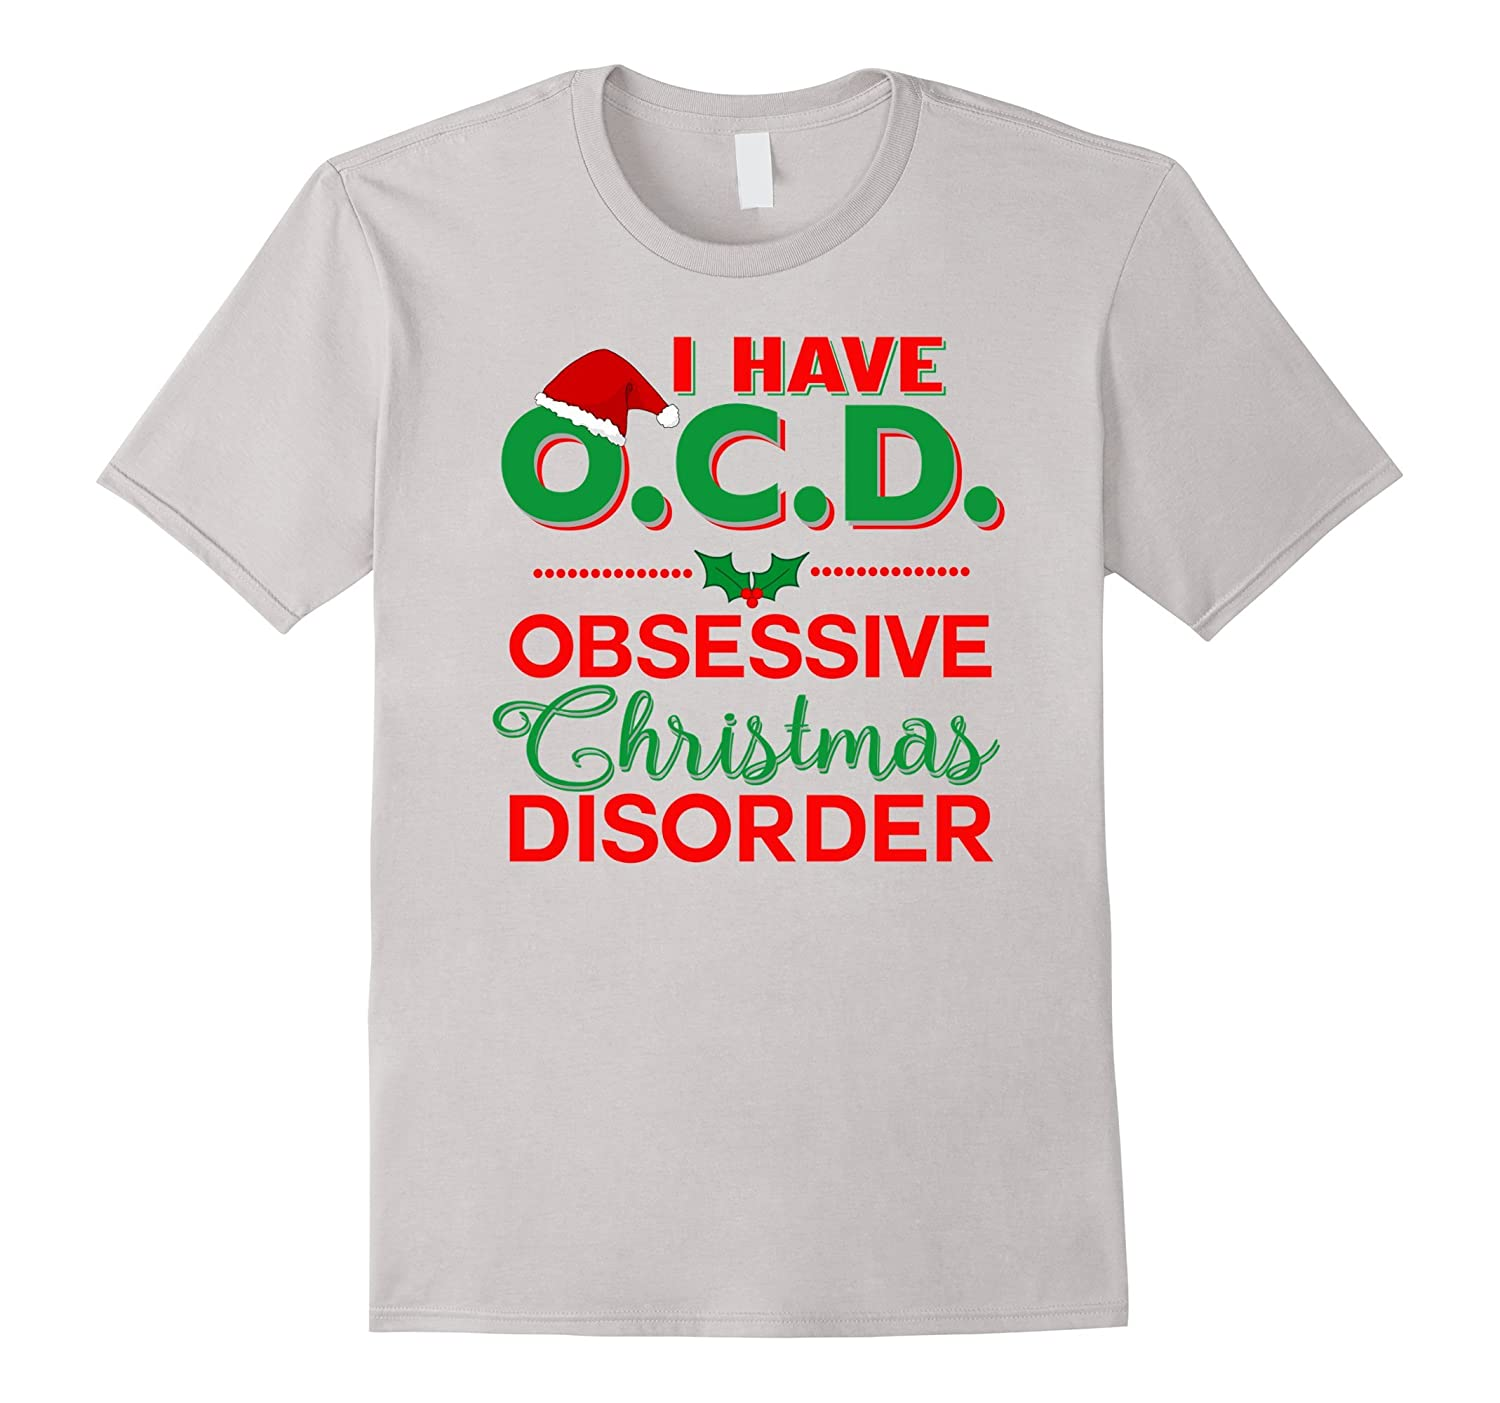 I Have OCD Obsessive Christmas Disorder-CL – Colamaga